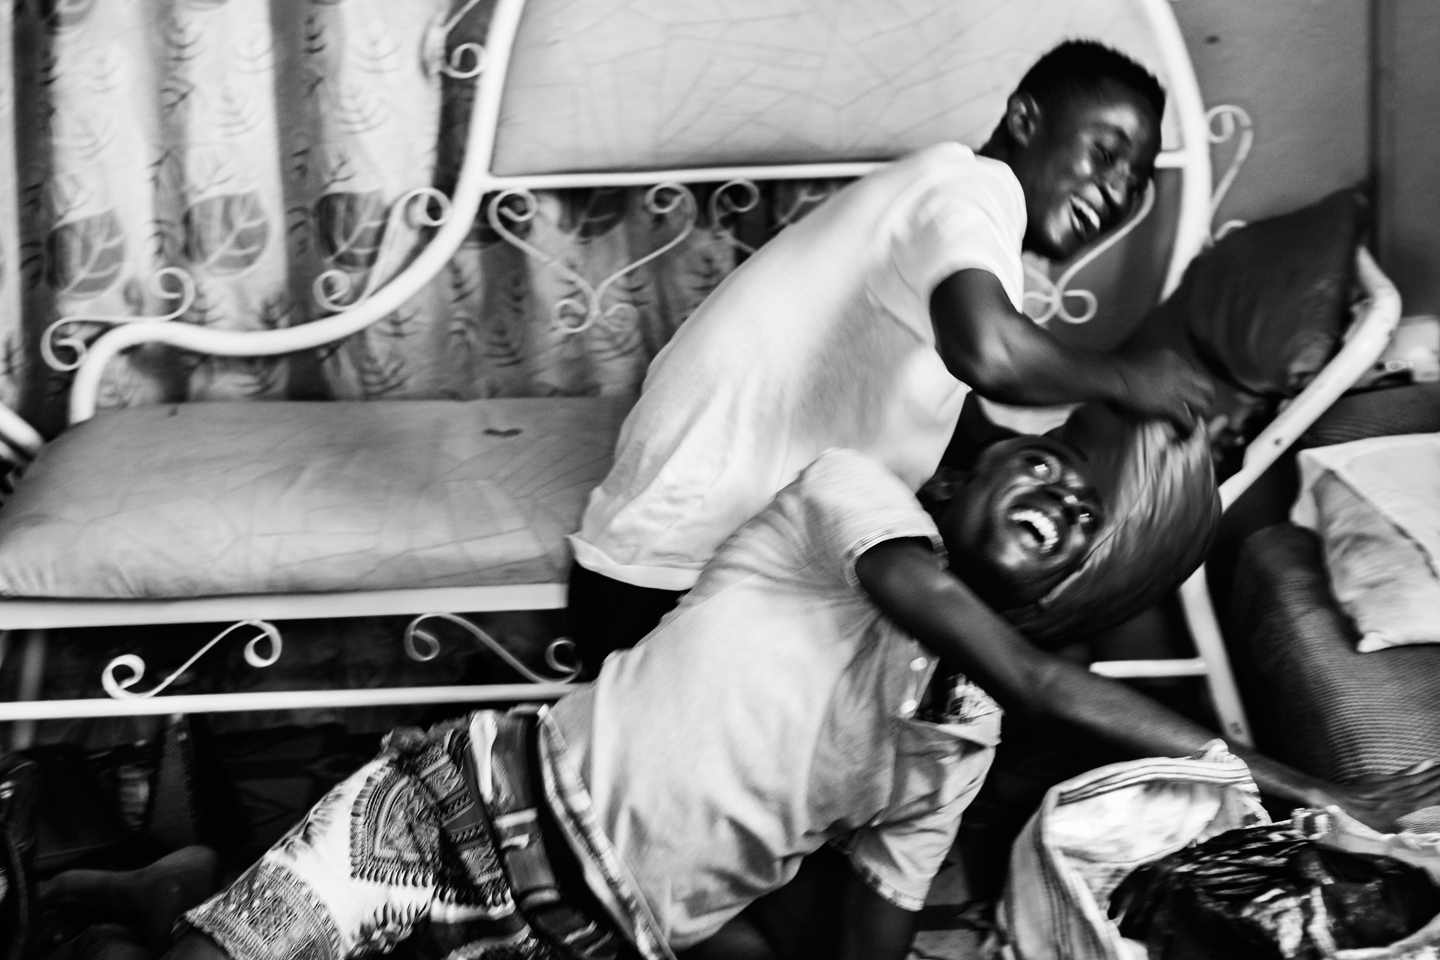 Untitled 1, from the series 'Just like us'. Eric Gyamfi